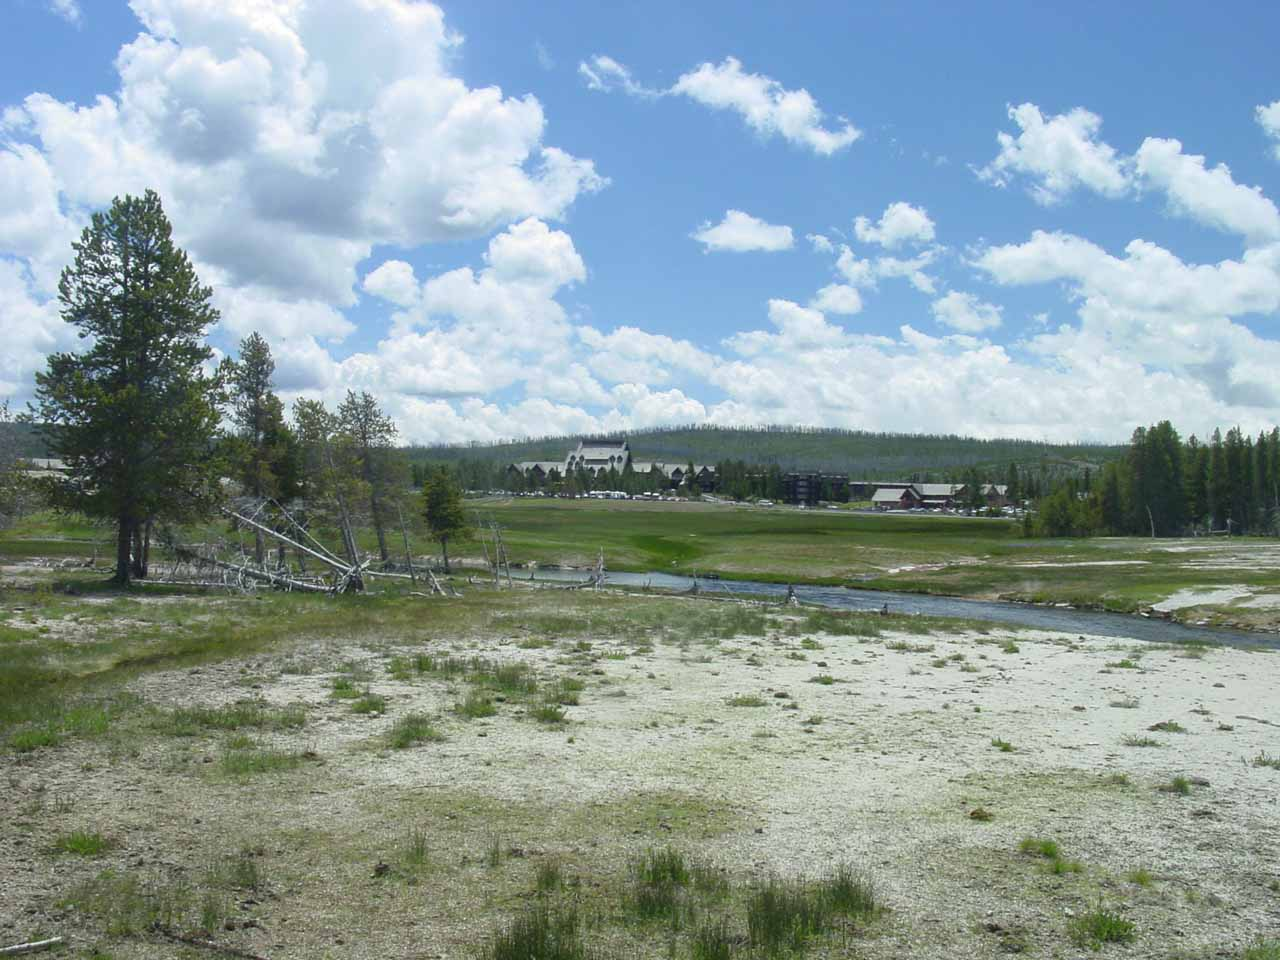 Wide open view of the Upper Geyser Basin